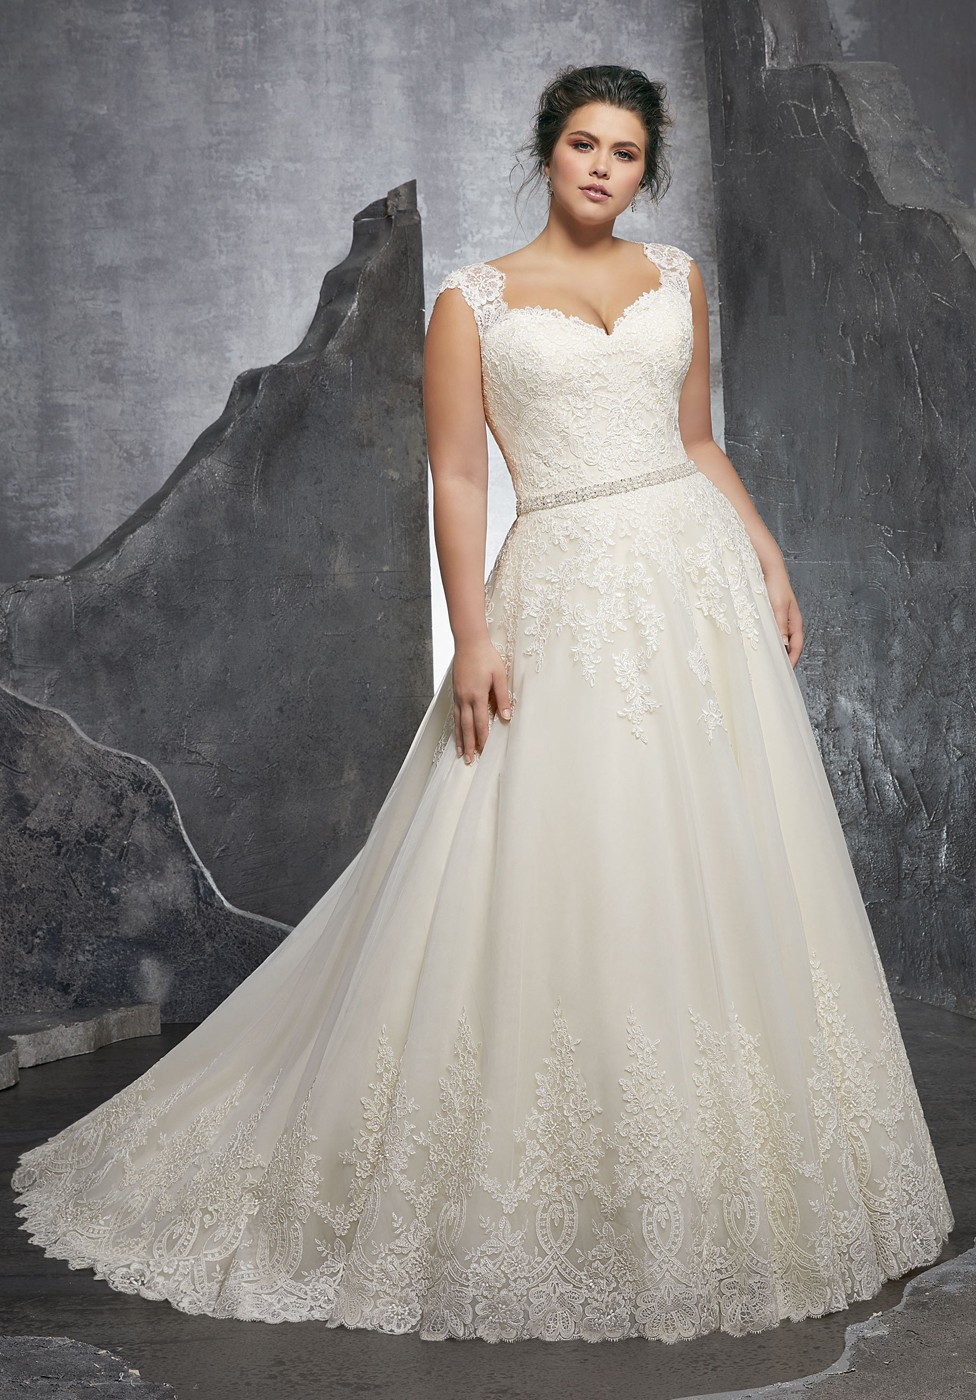 1904a6a951b Mori Lee Kenley Style 3232 Dress - MadameBridal.com